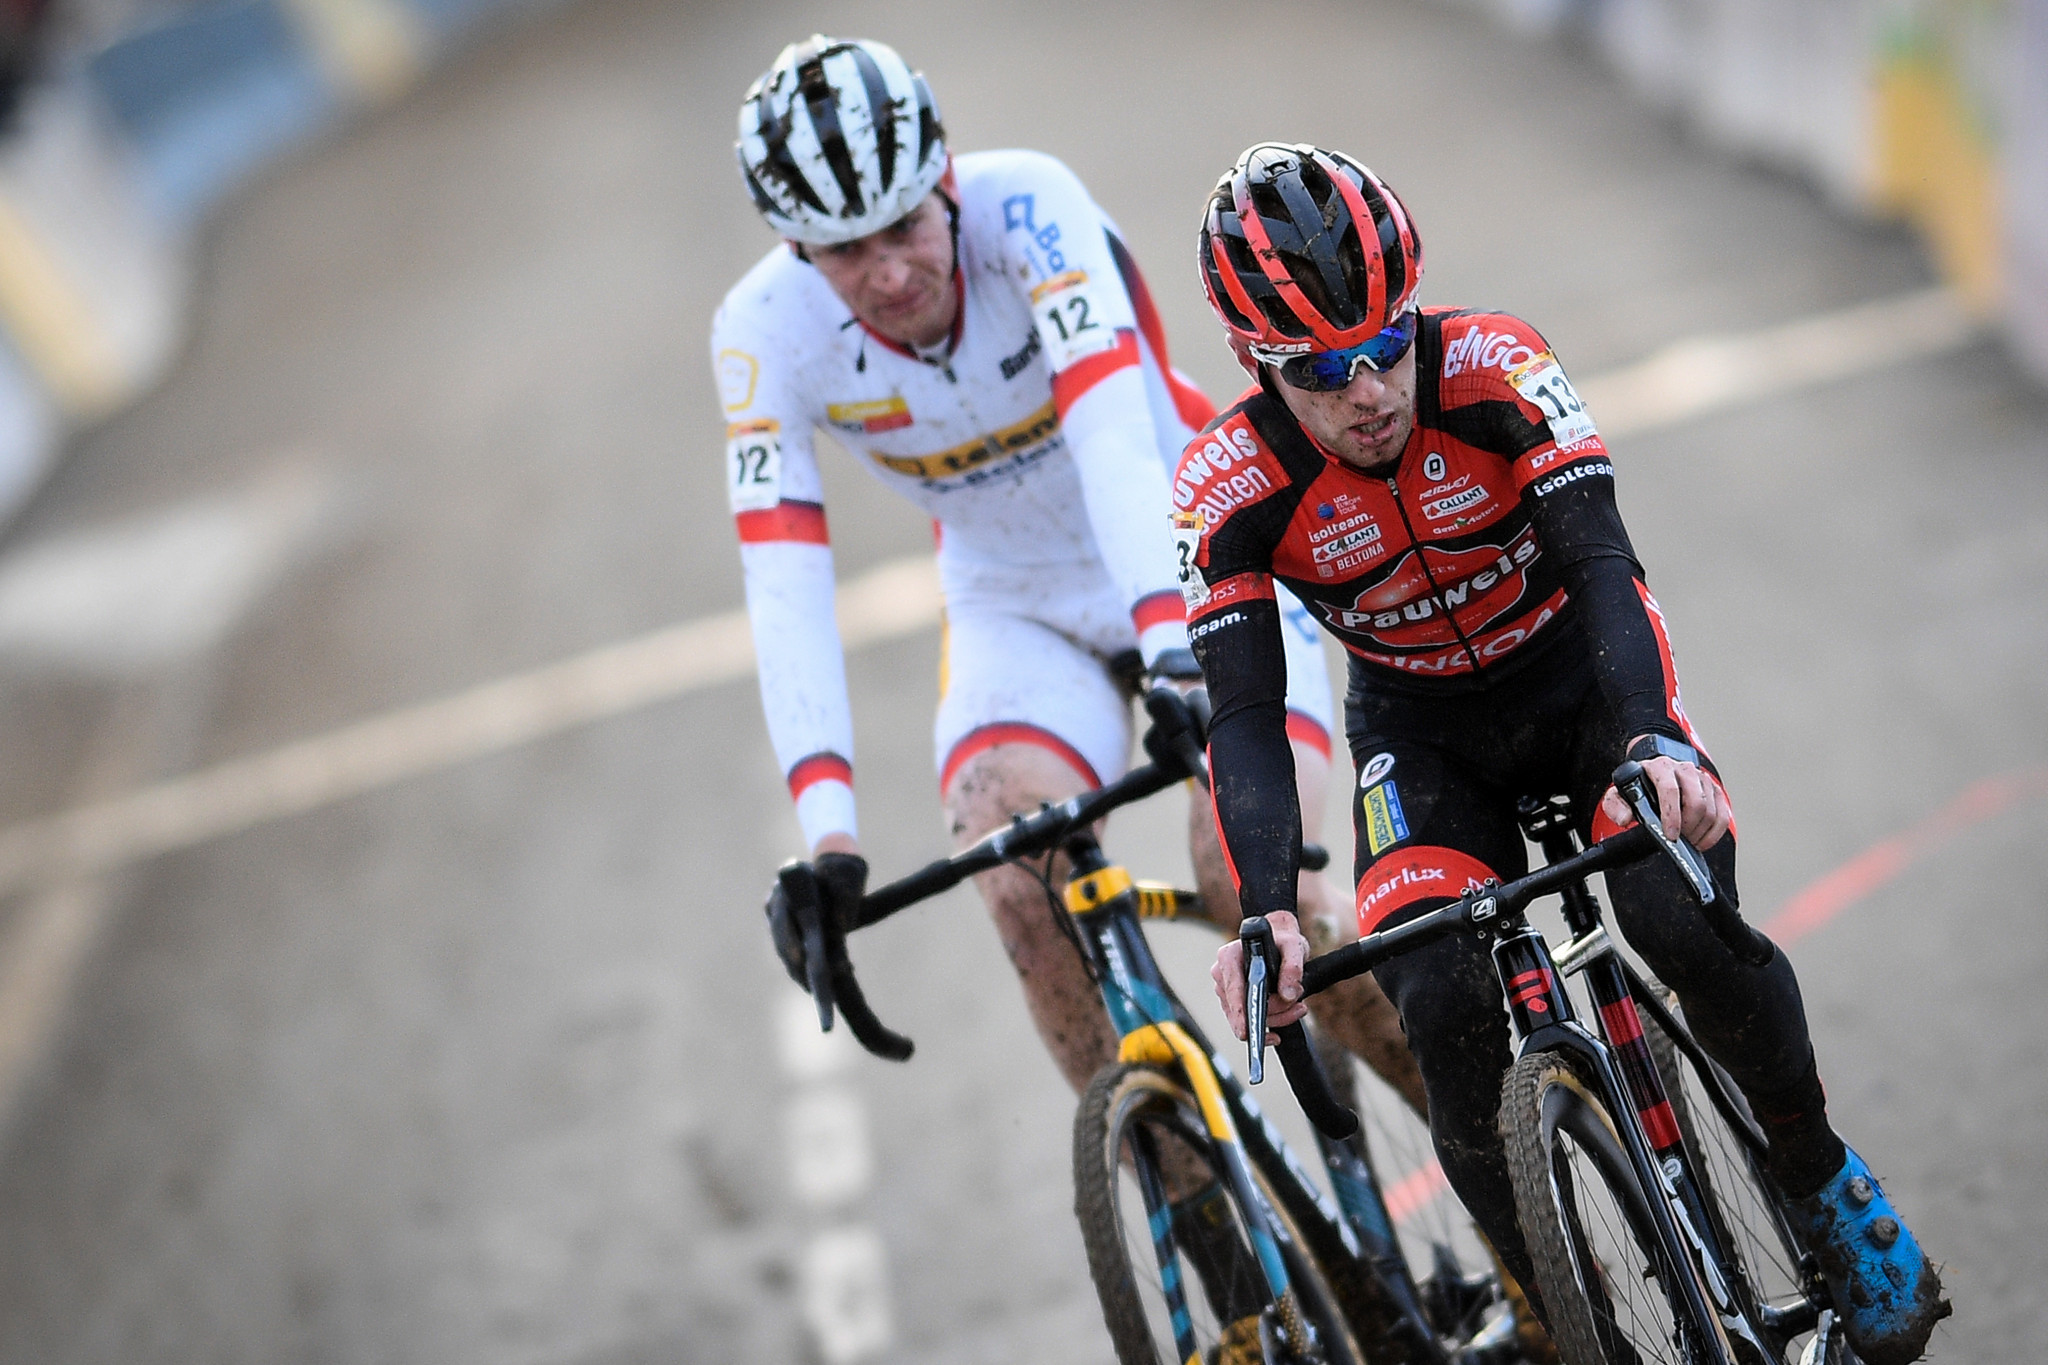 Aerts banking on consistency to retain UCI Cyclo-cross World Cup title